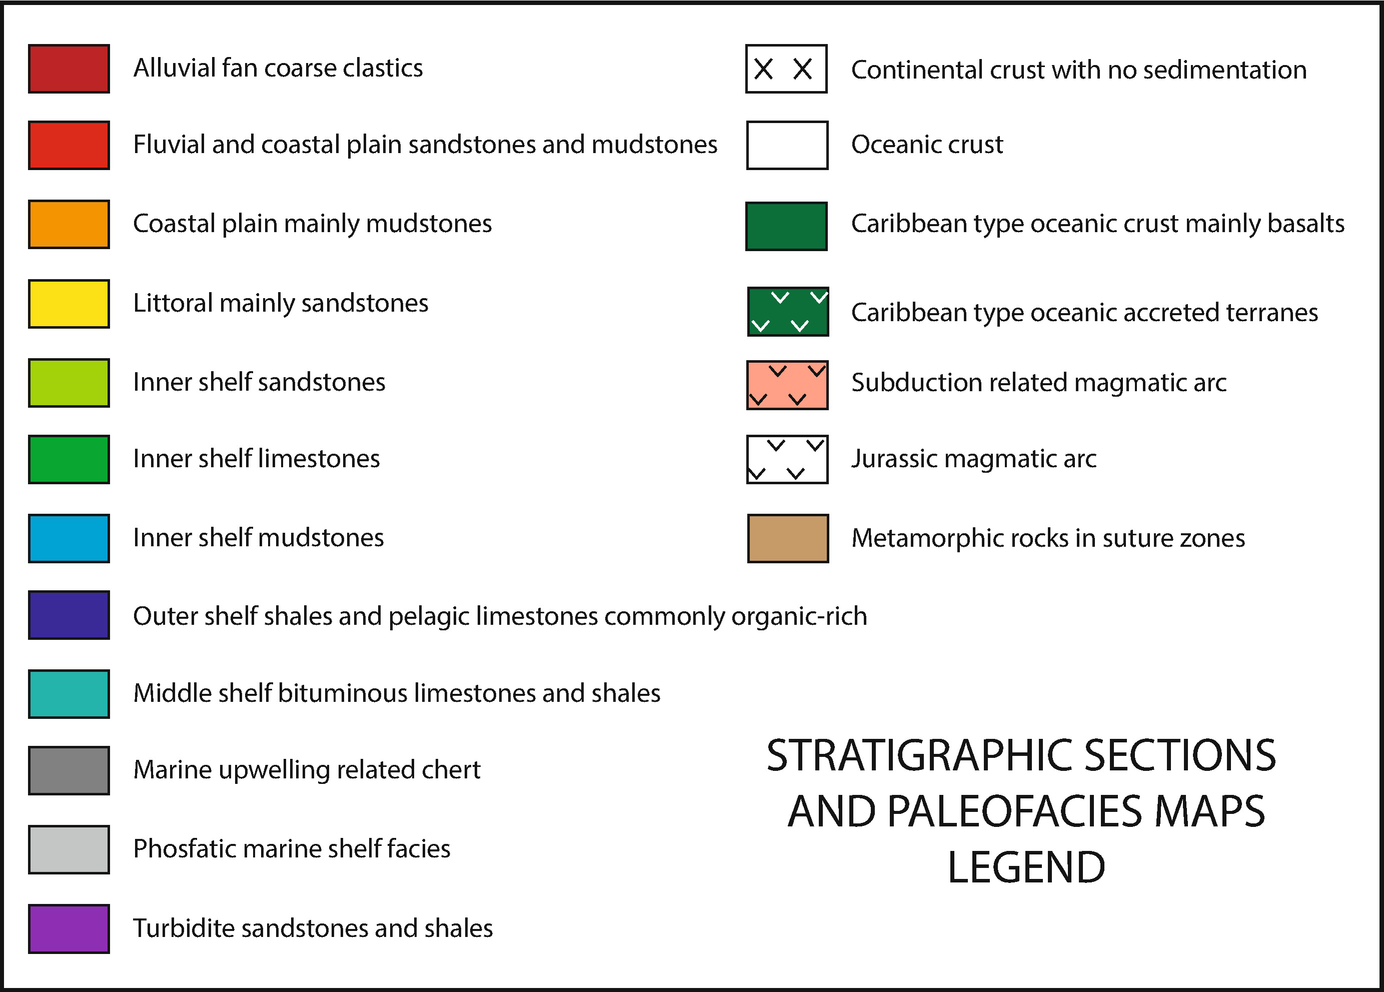 Cretaceous Stratigraphy and Paleo-Facies Maps of